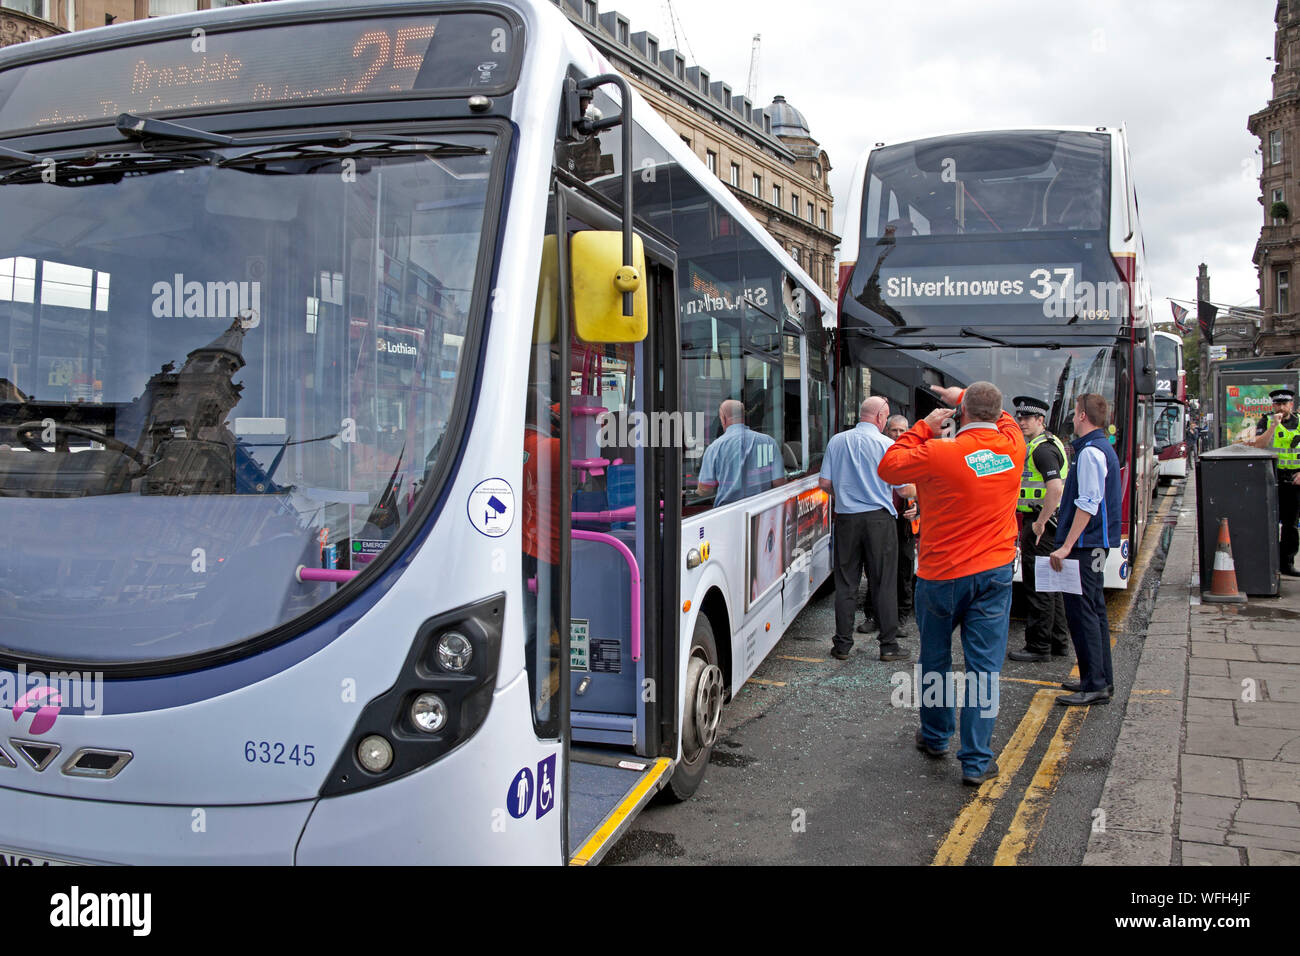 Waverley Mall, Princes Street, Edinburgh, Scotland, UK. 31st August 2019. Between 10.30am and 1045am there was a collision at Waverley Mall on Princes Street between a single deck First Bus and a double deck Lothian Bus pictured, shows one of the nearside windows of the First Bus completely missing. Yesterday (Friday) in Princes Street another bus crashed into a bus shelter, Stock Photo